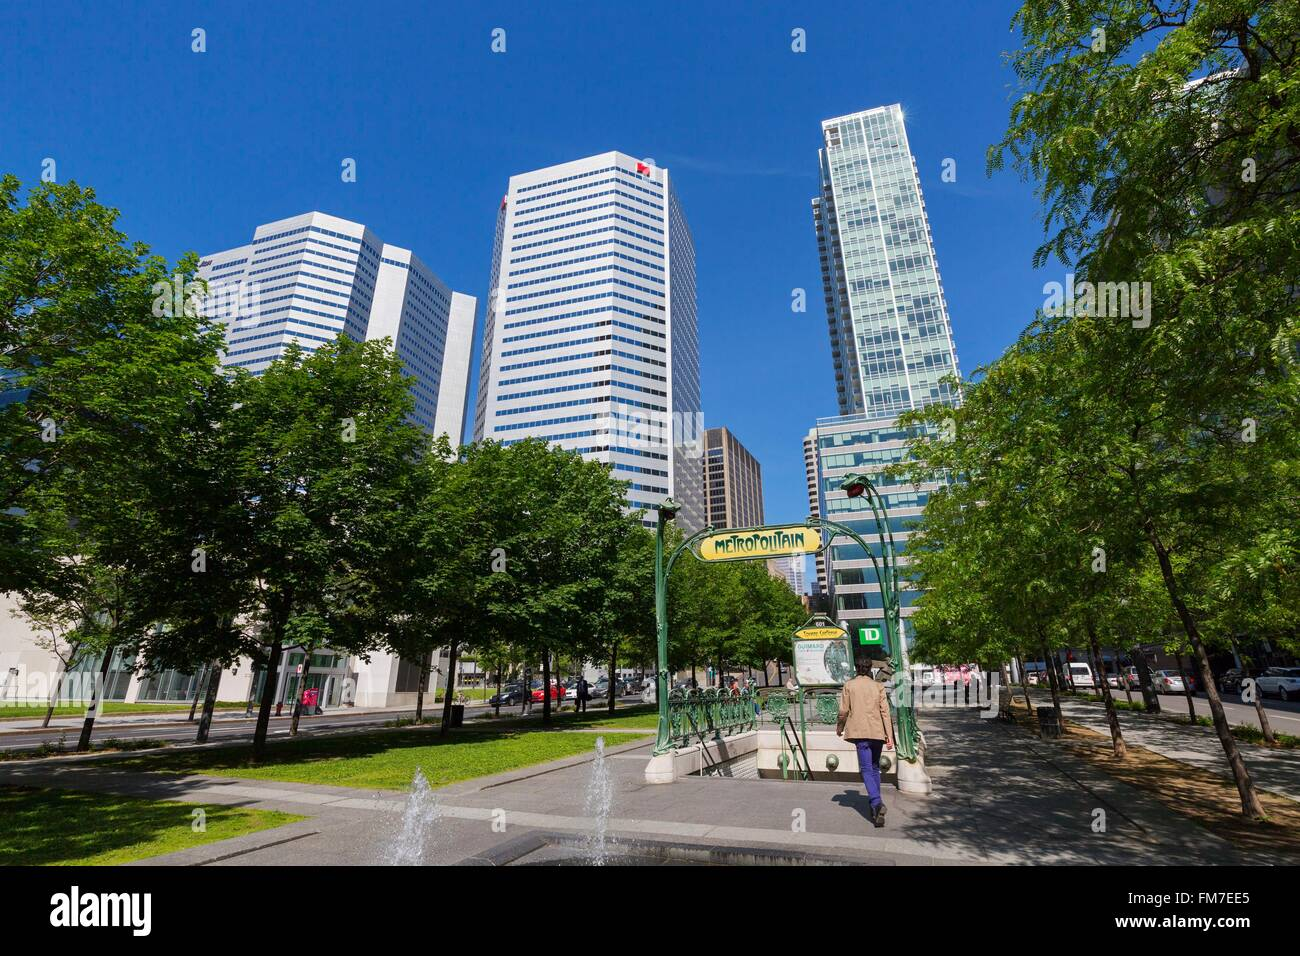 Canada, Quebec province, Montreal, the International Quarter, Victoria Square, Liberty style subway entrance by - Stock Image